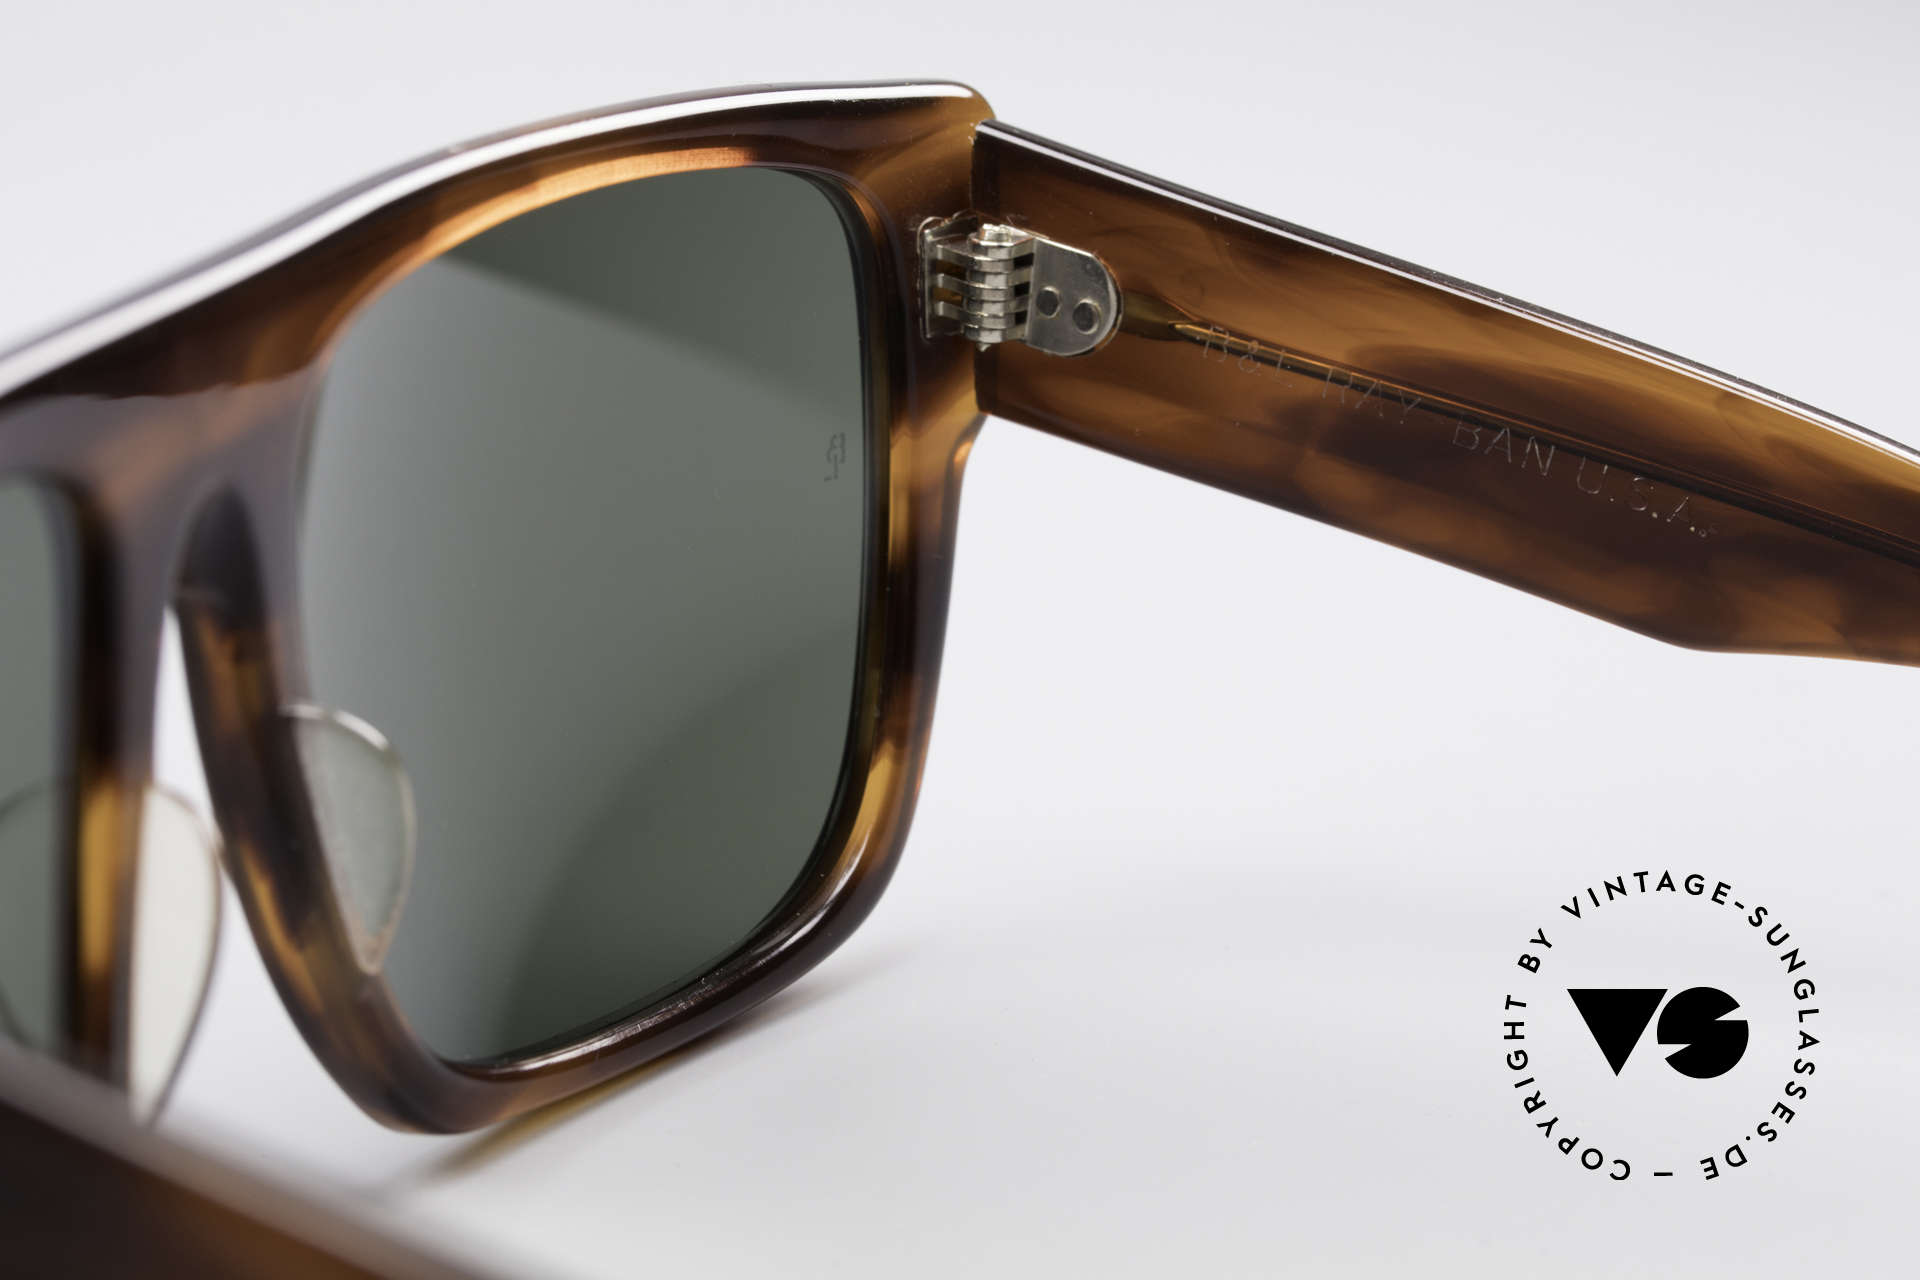 Ray Ban Drifter Old 80's USA B&L Sunglasses, NO RETRO sunglasses, but a 30 years old original, Made for Men